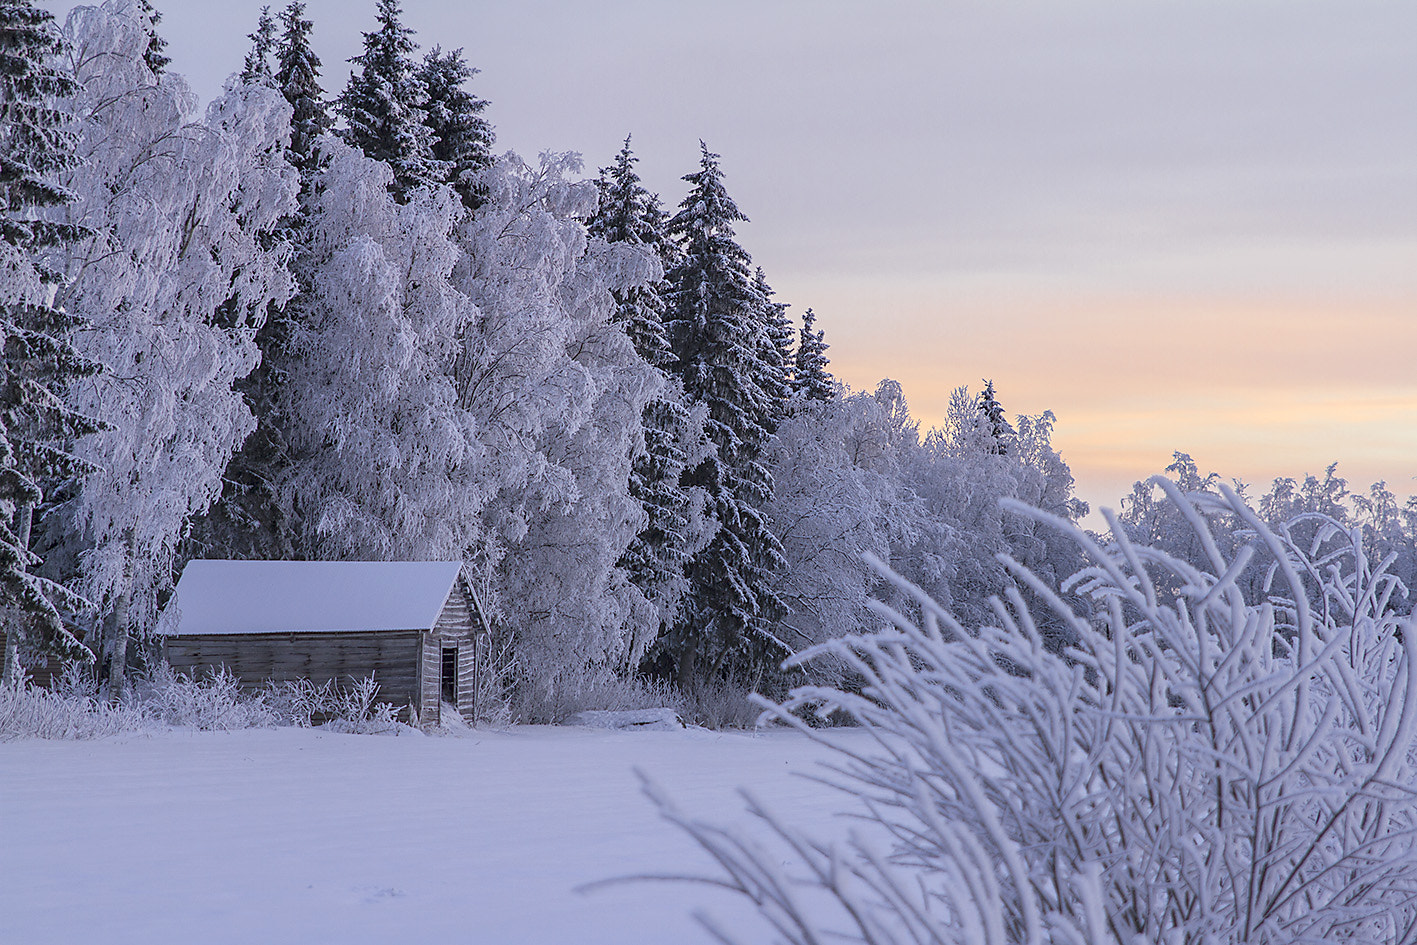 Photograph Winter in Finland by ulrica wiik on 500px